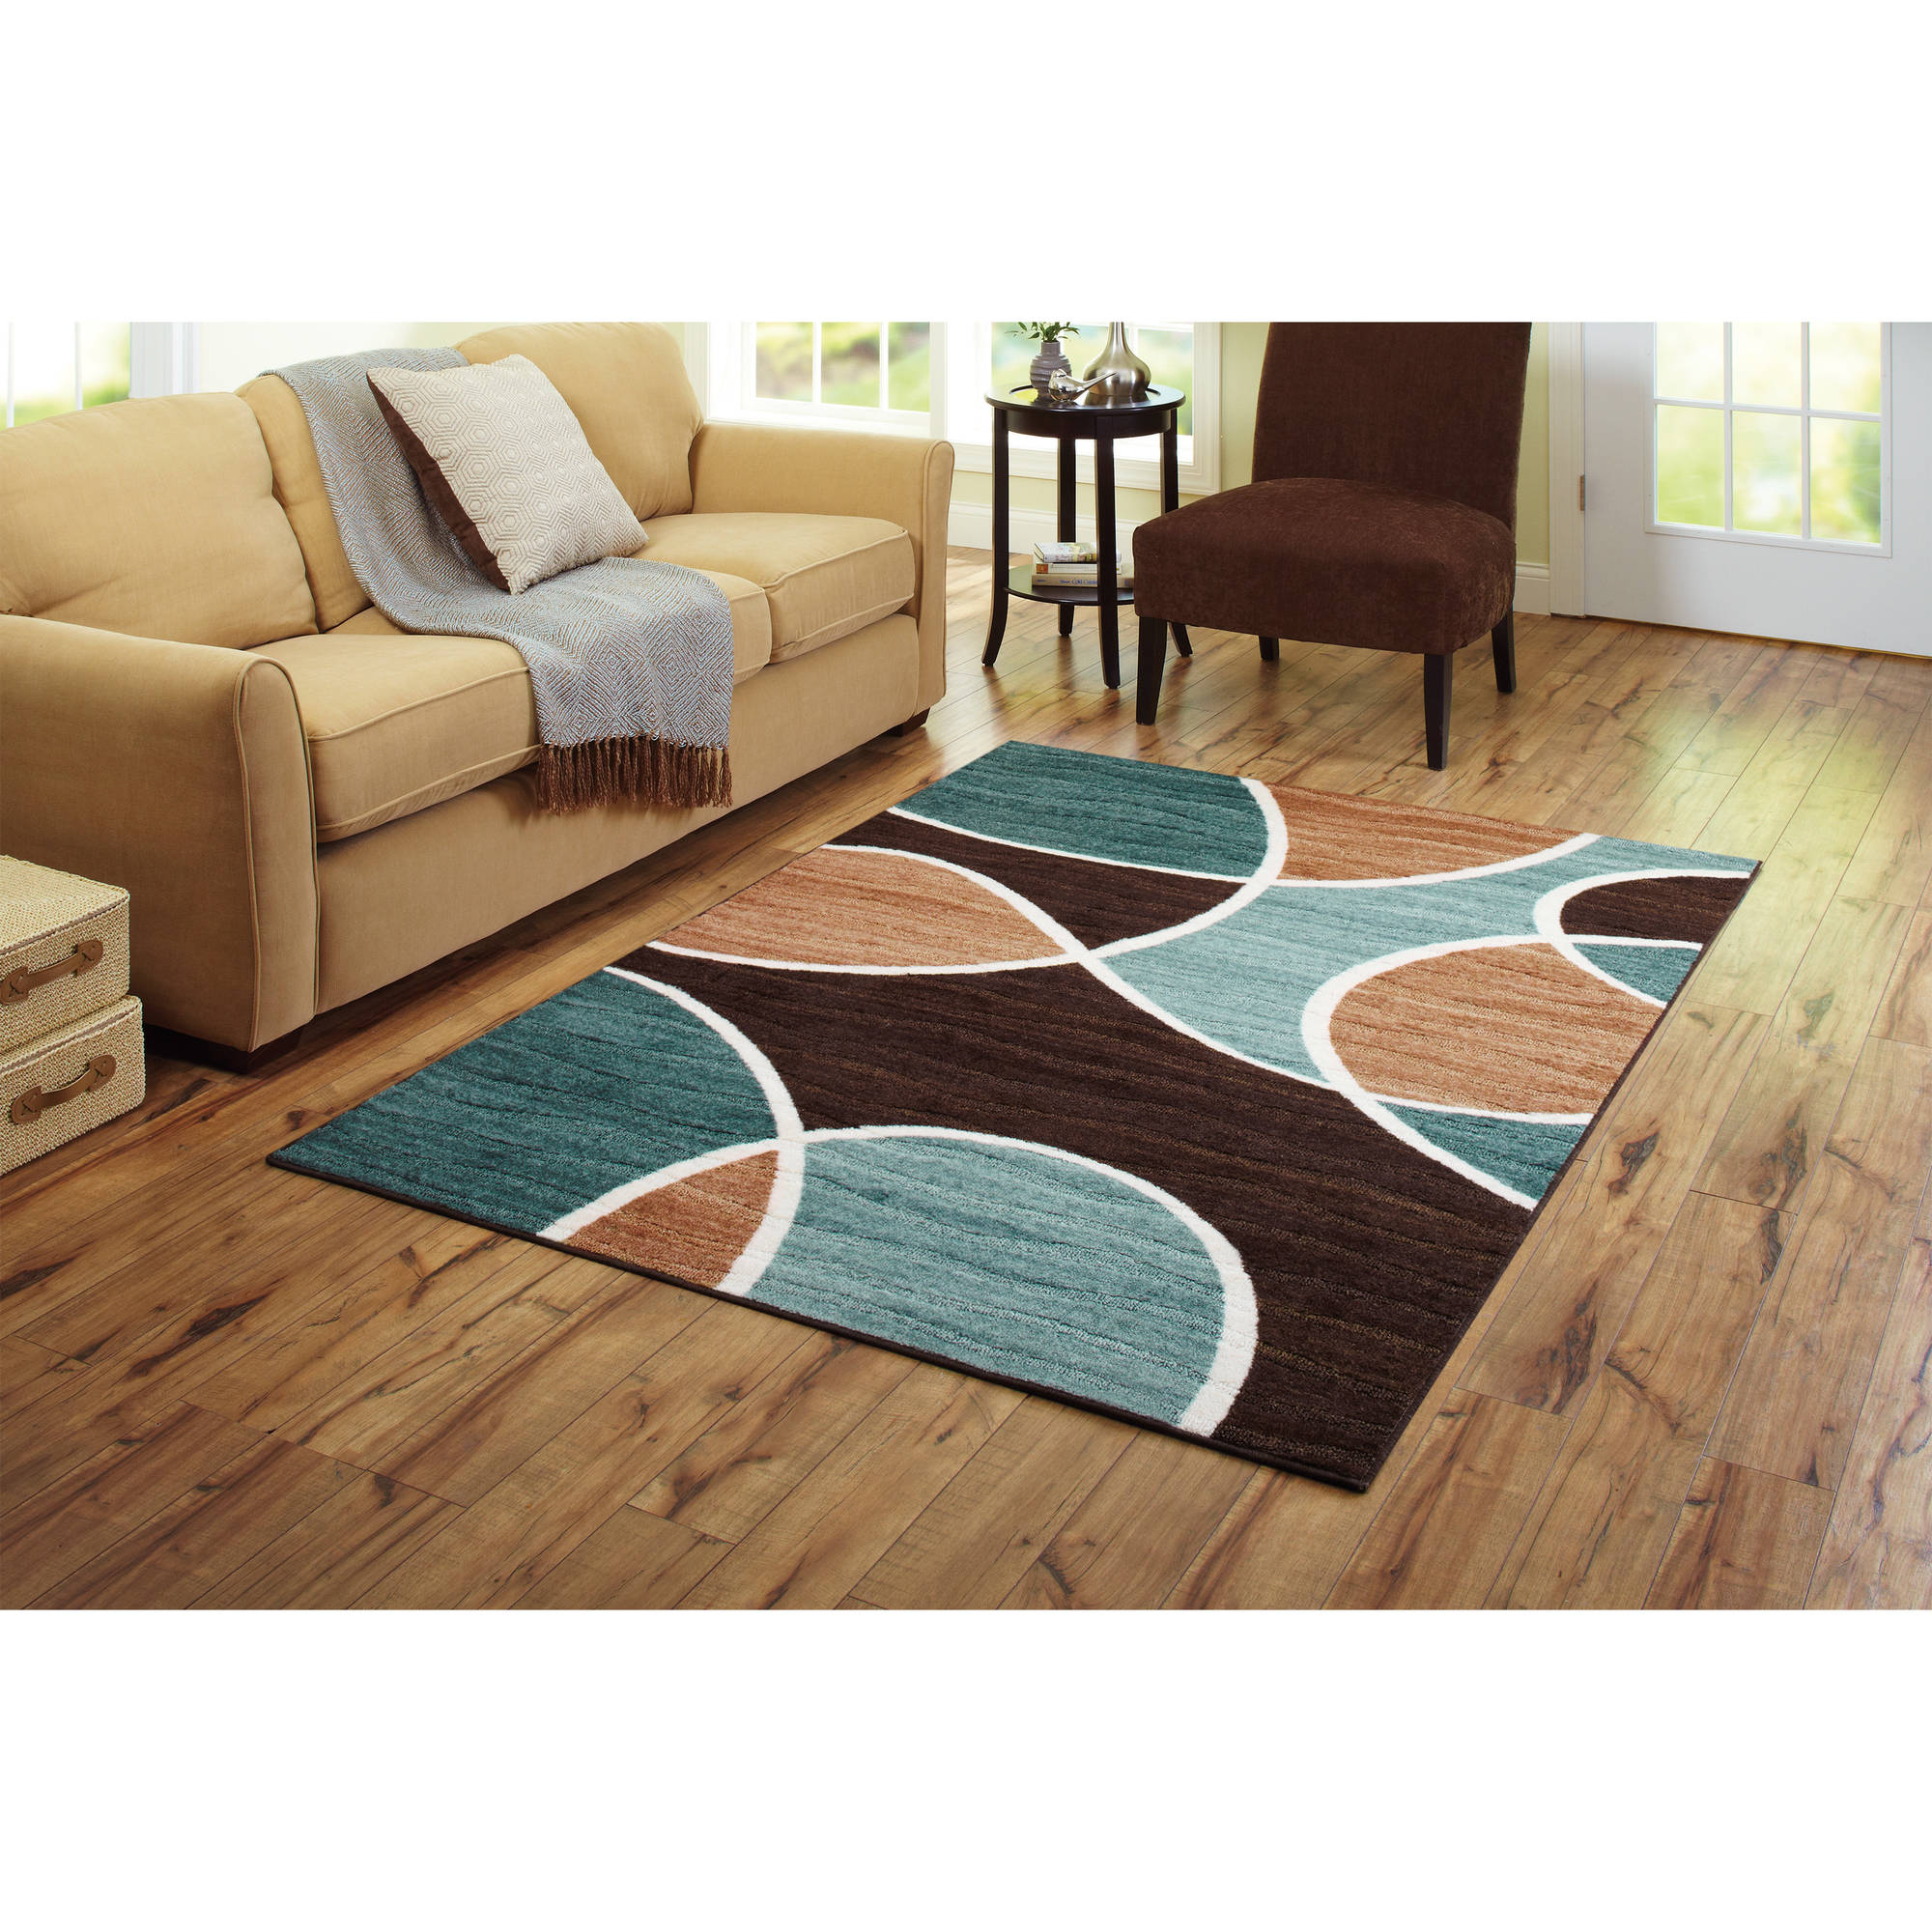 Better Homes And Gardens Geo Waves Area Rug Or Runner Com